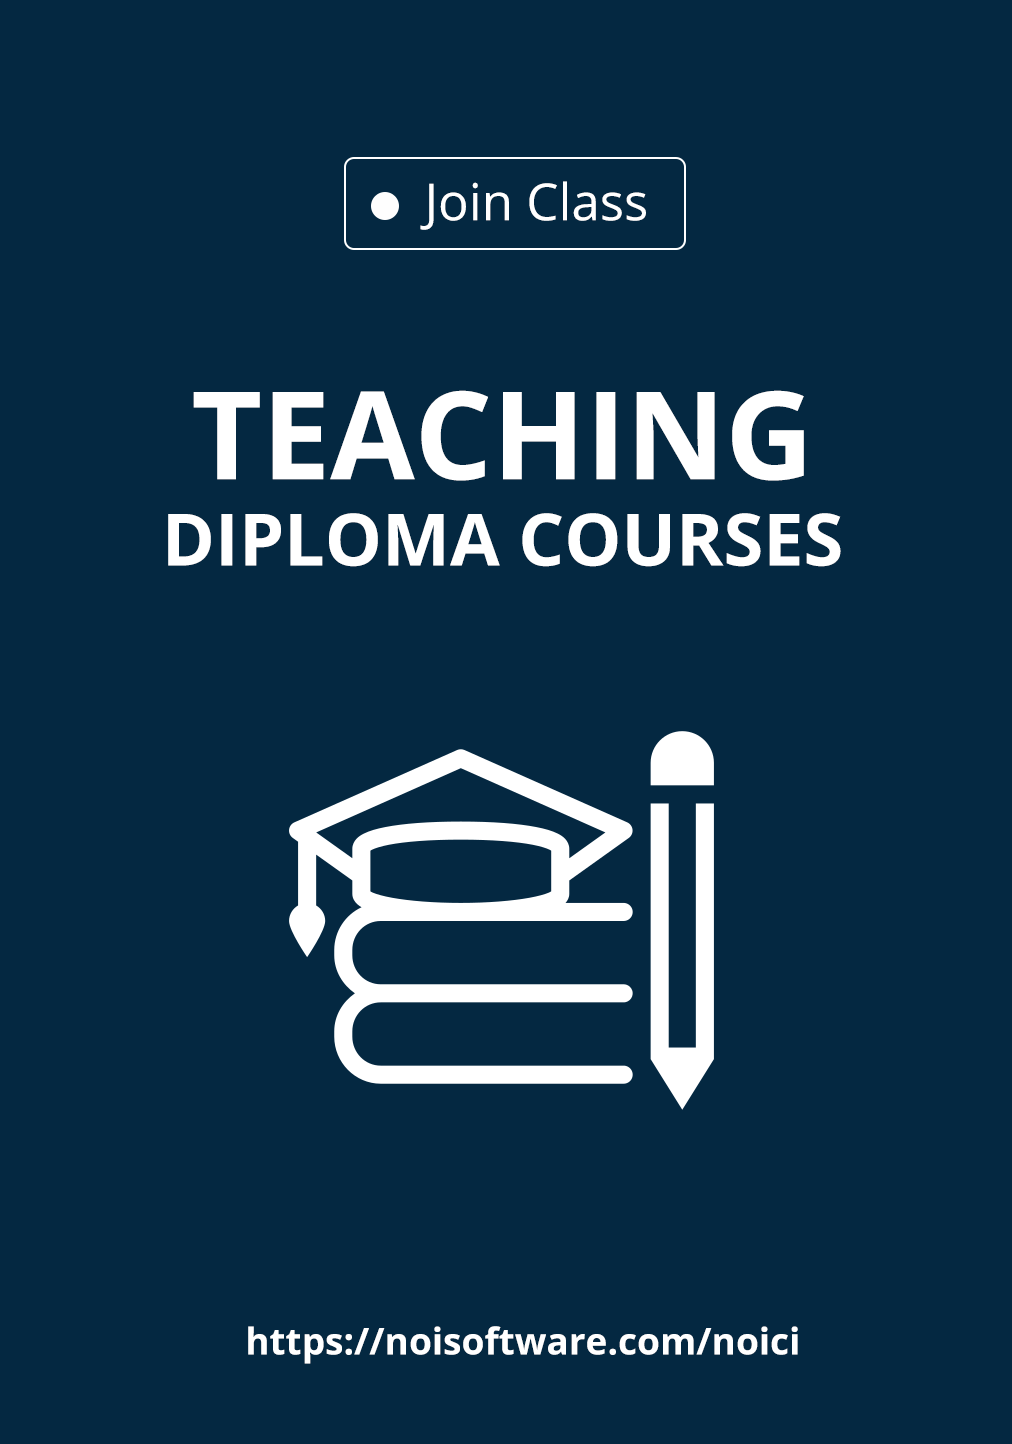 Diploma in Teaching Courses